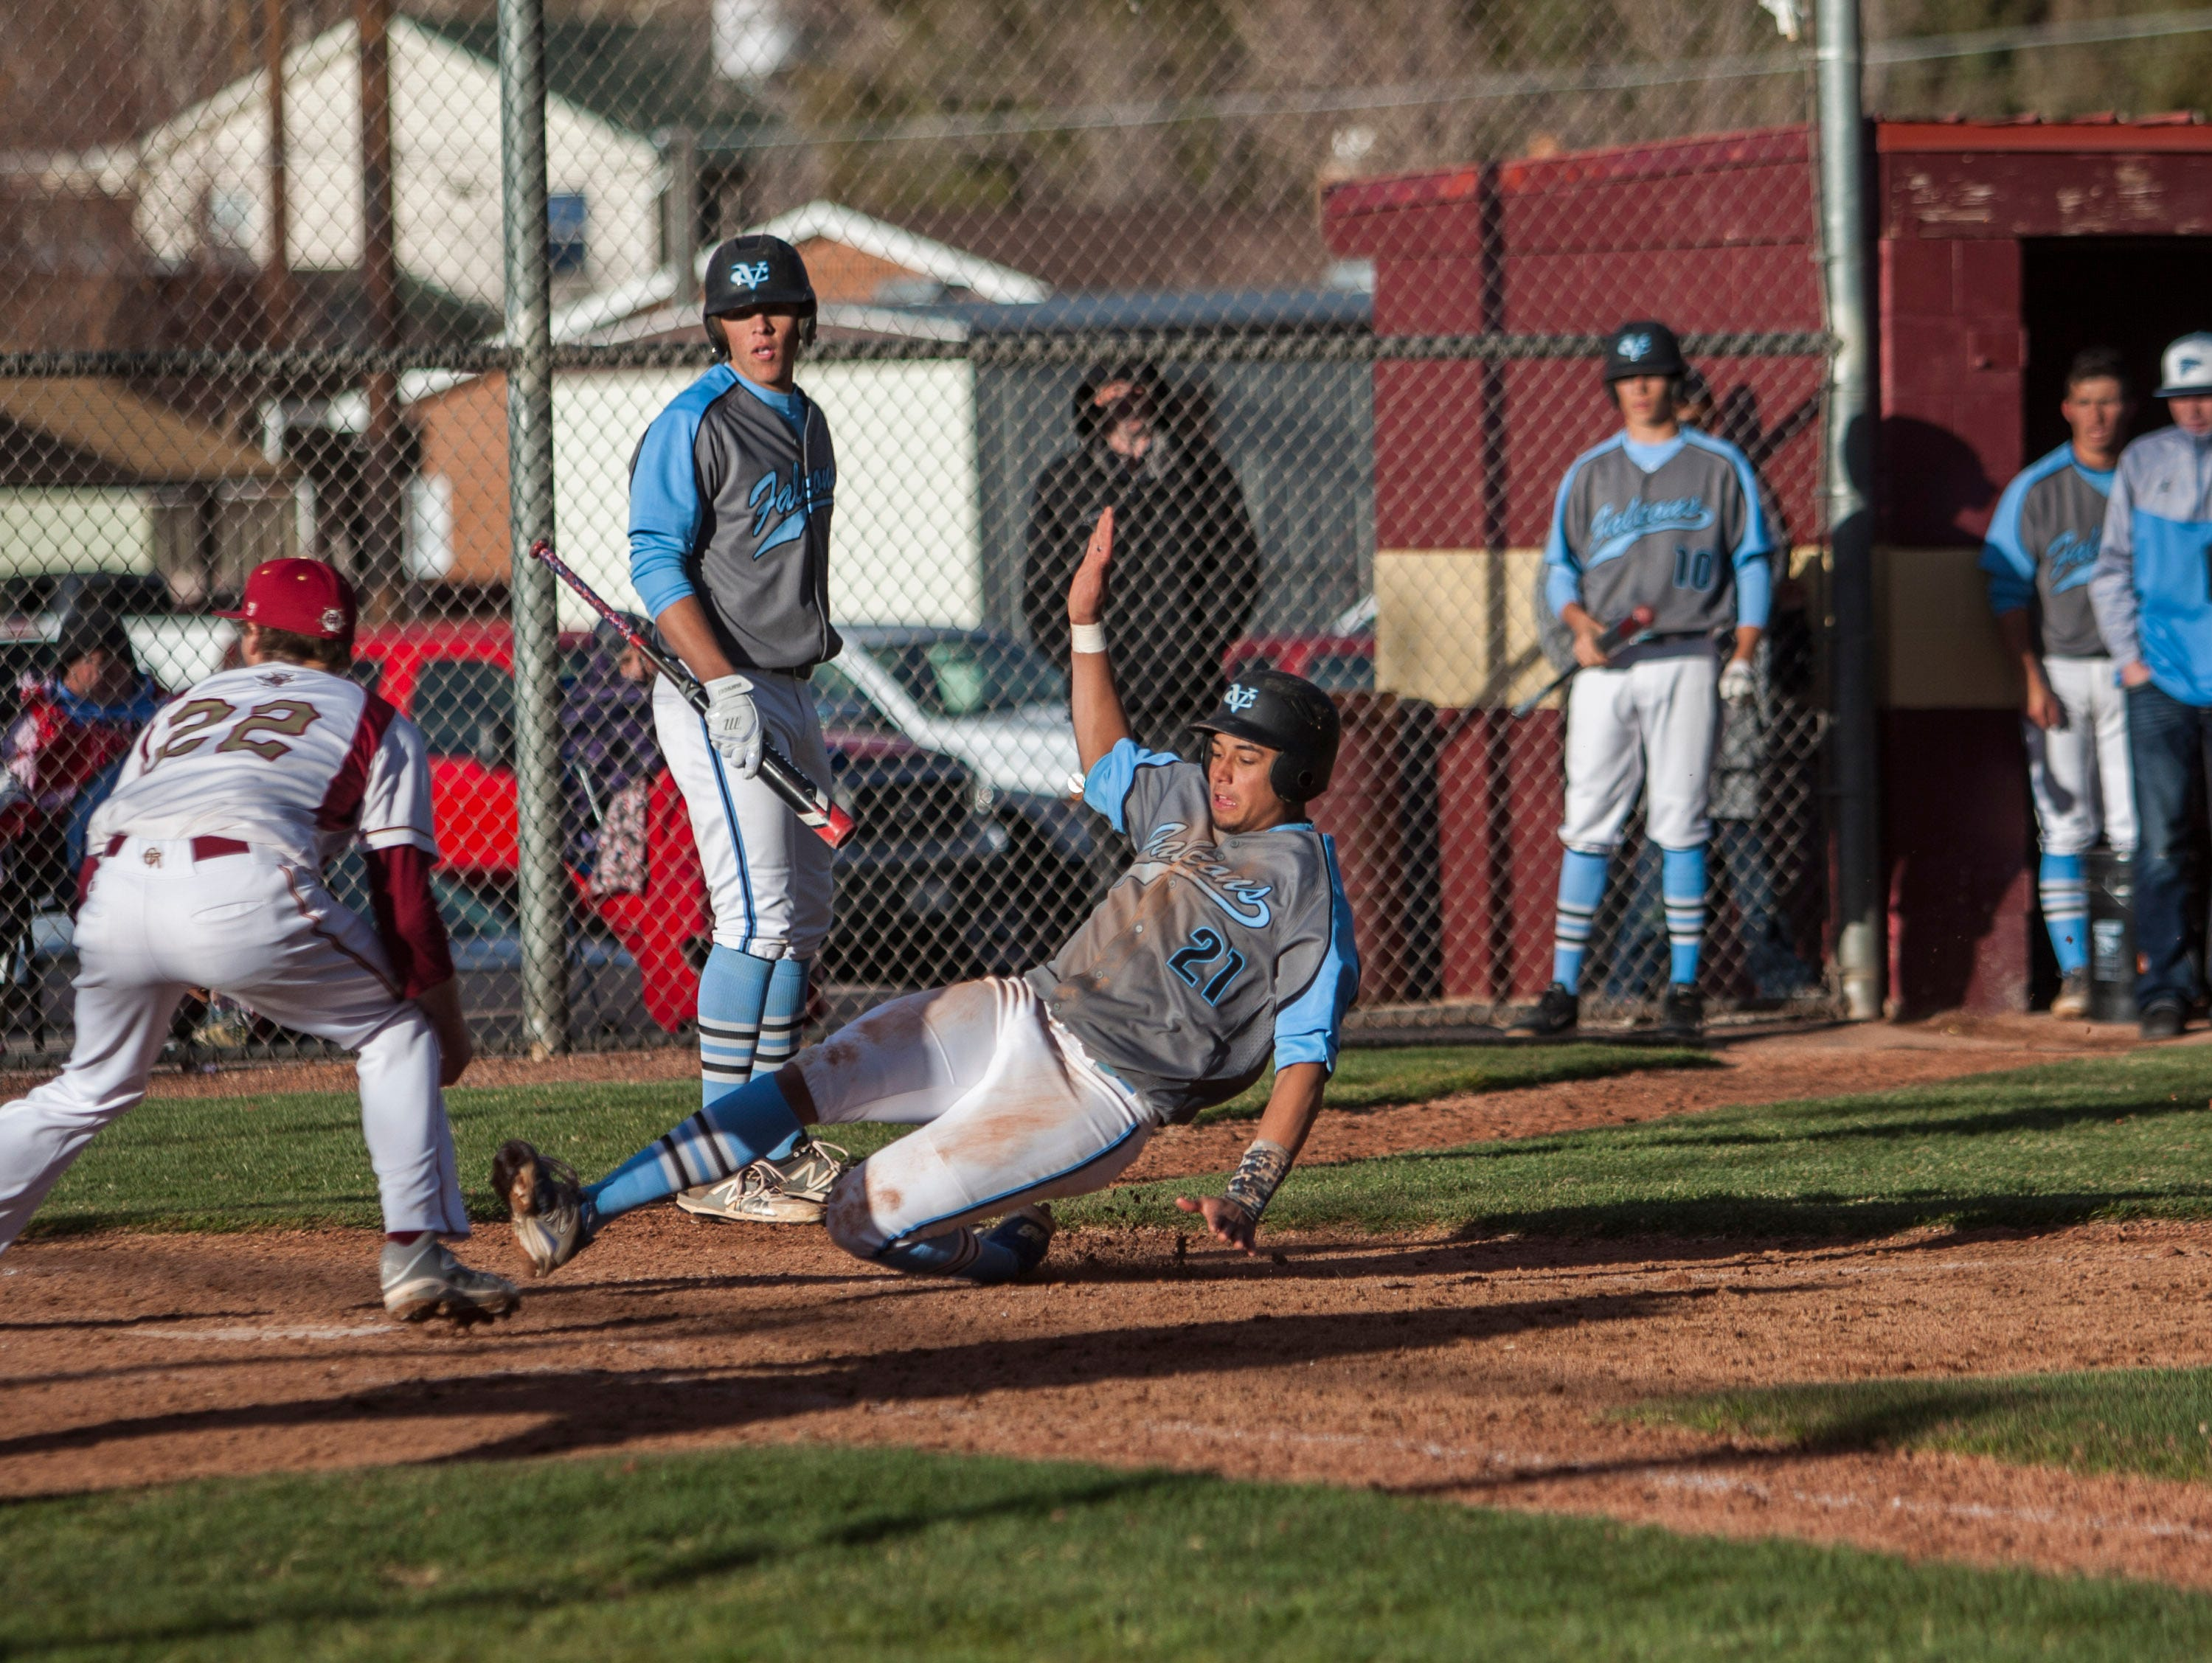 Canyon View's Xavier Stoker slides into home plate to score a run for the Falcons during the game at Cedar High, Thursday, Mar. 31, 2016.